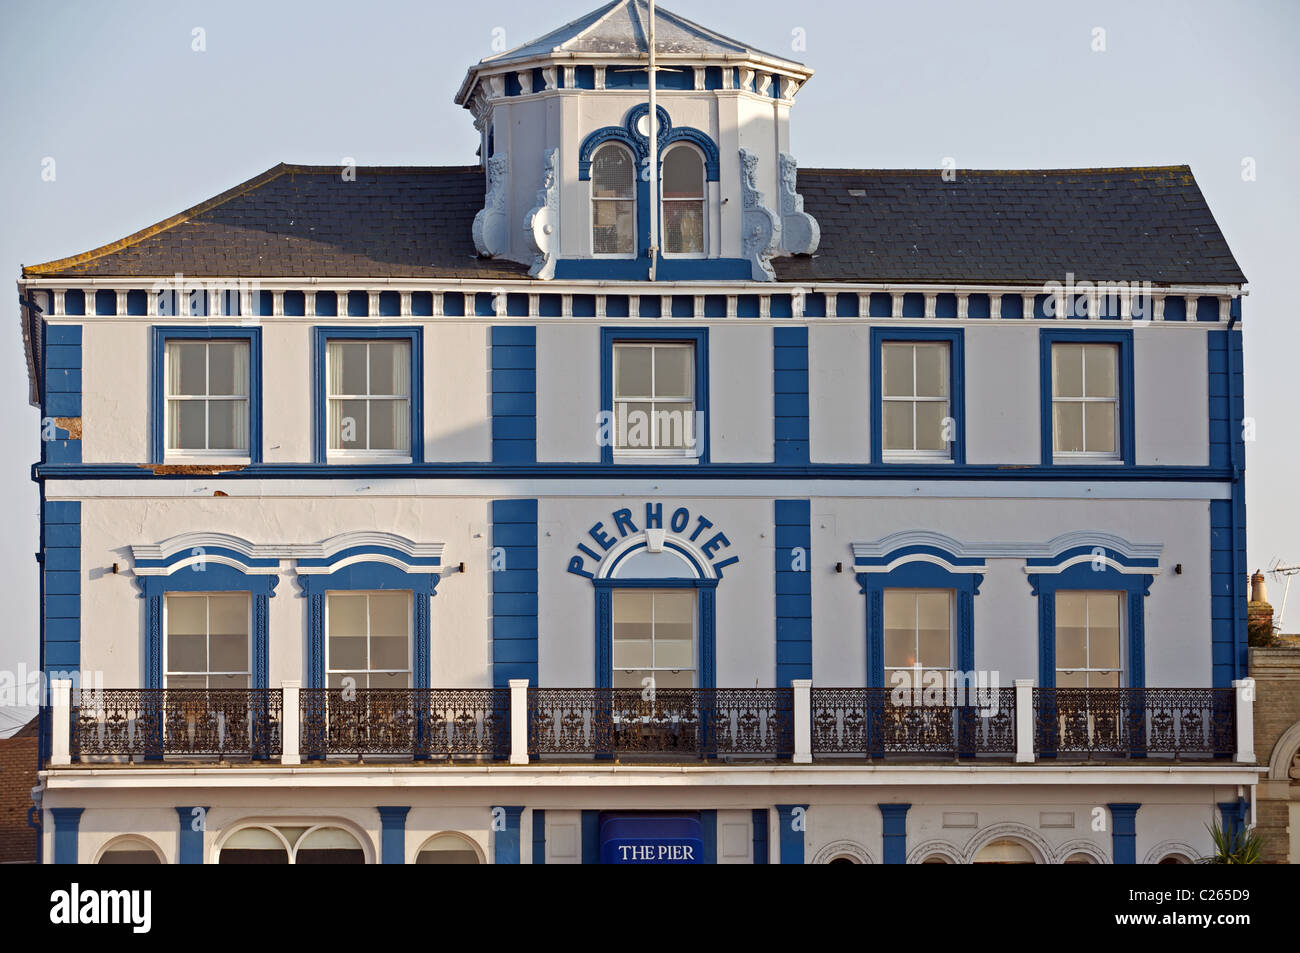 Pier hotel Harwich, Essex, UK. - Stock Image